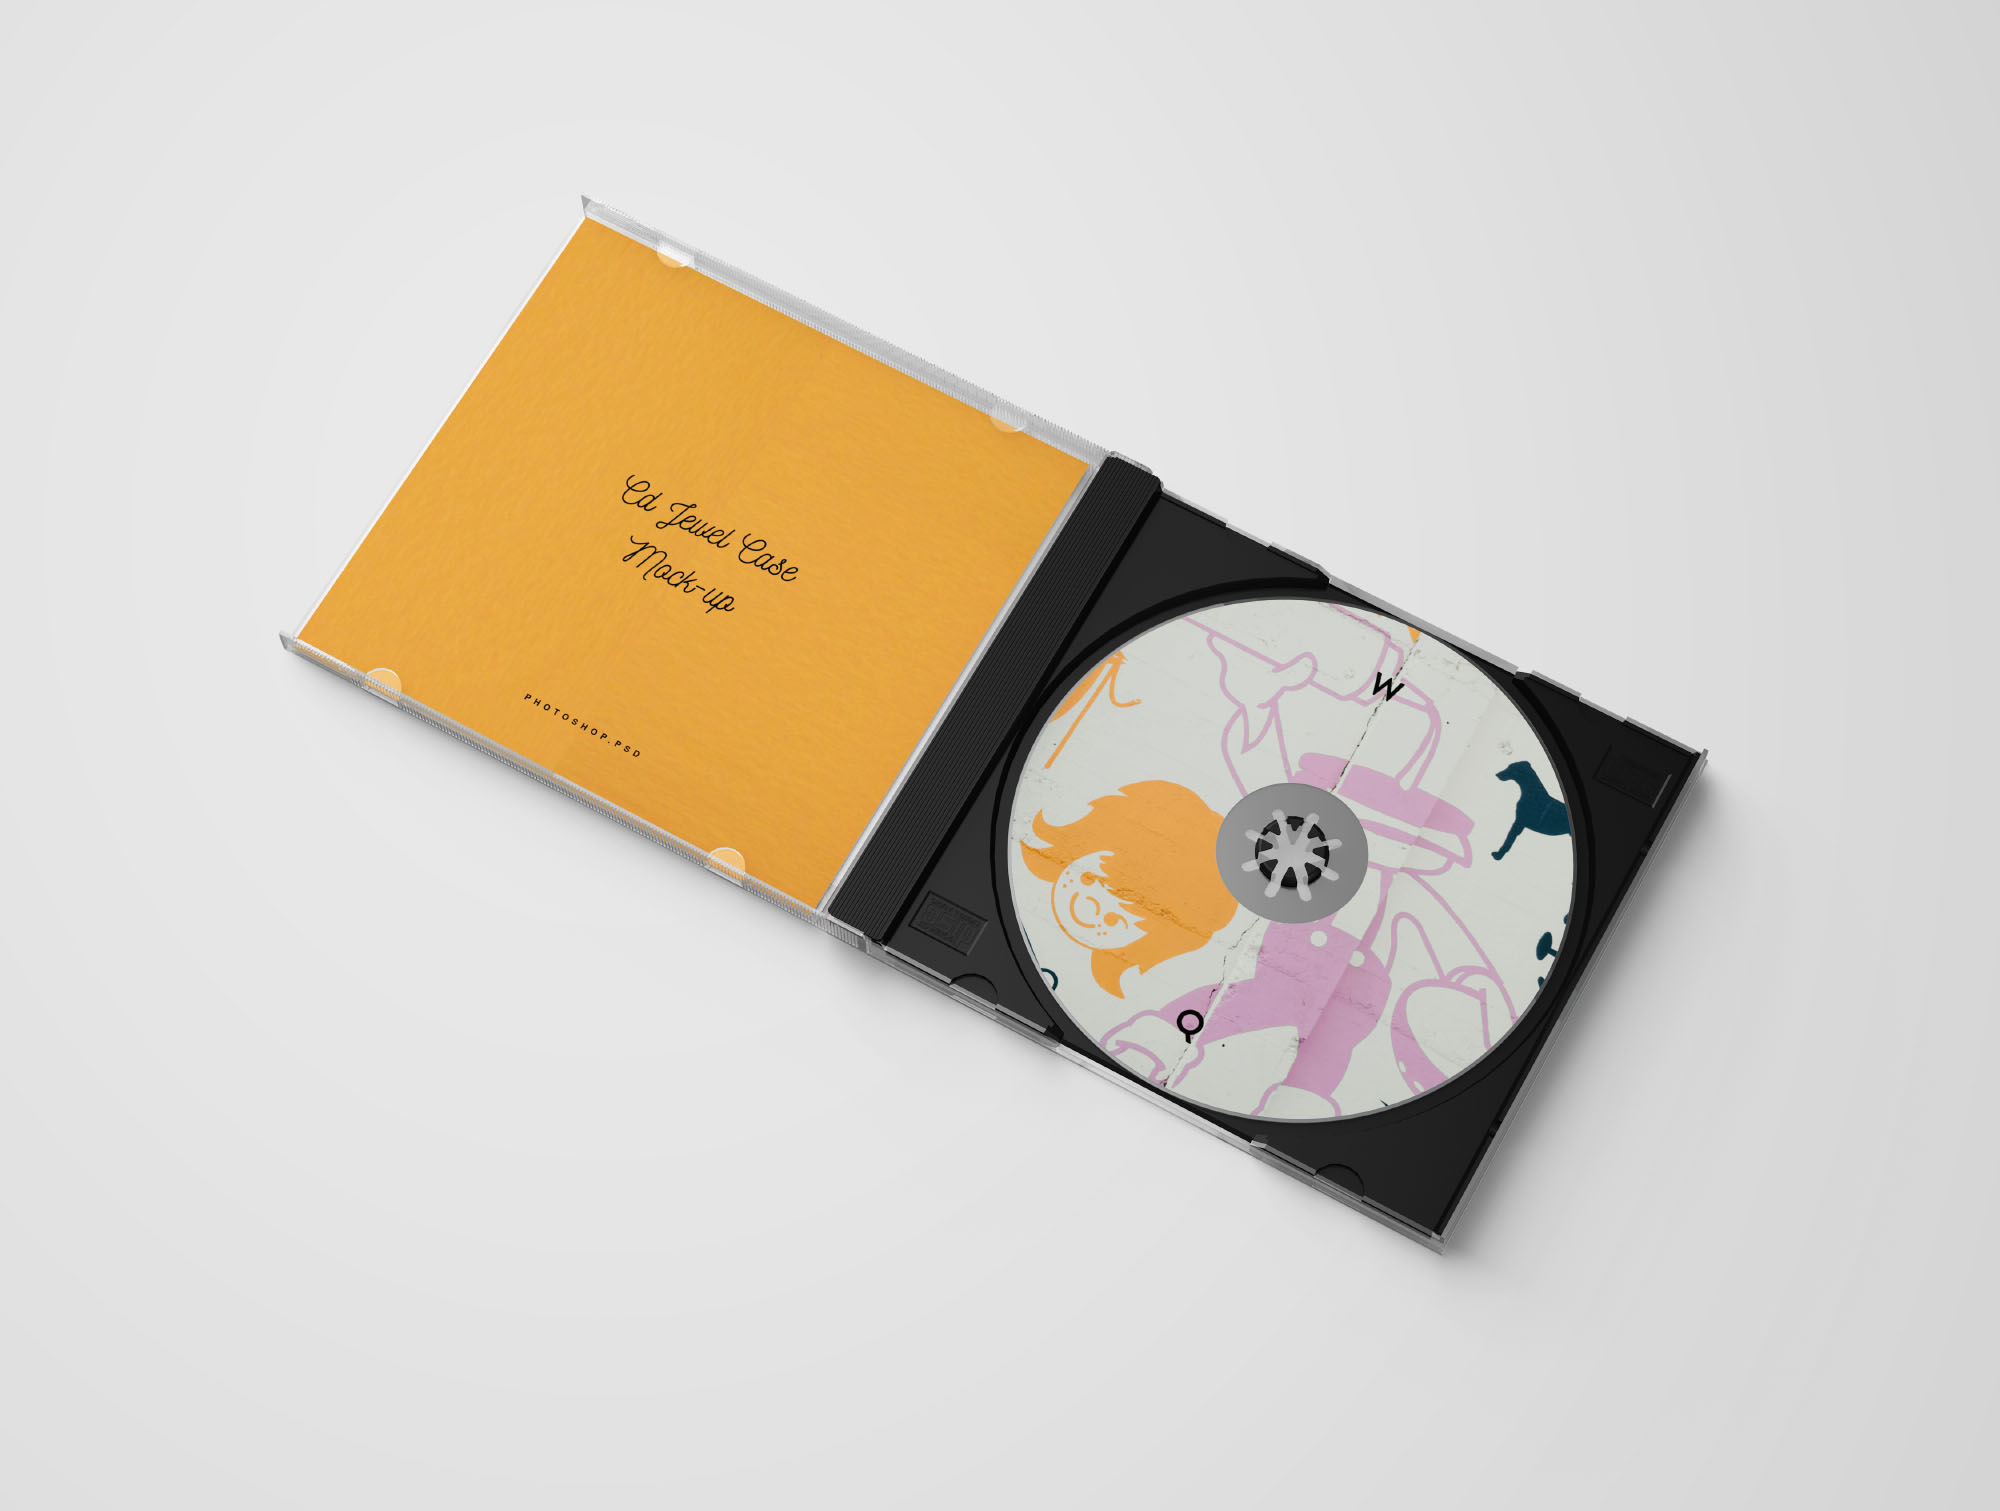 cd jewel case mockup